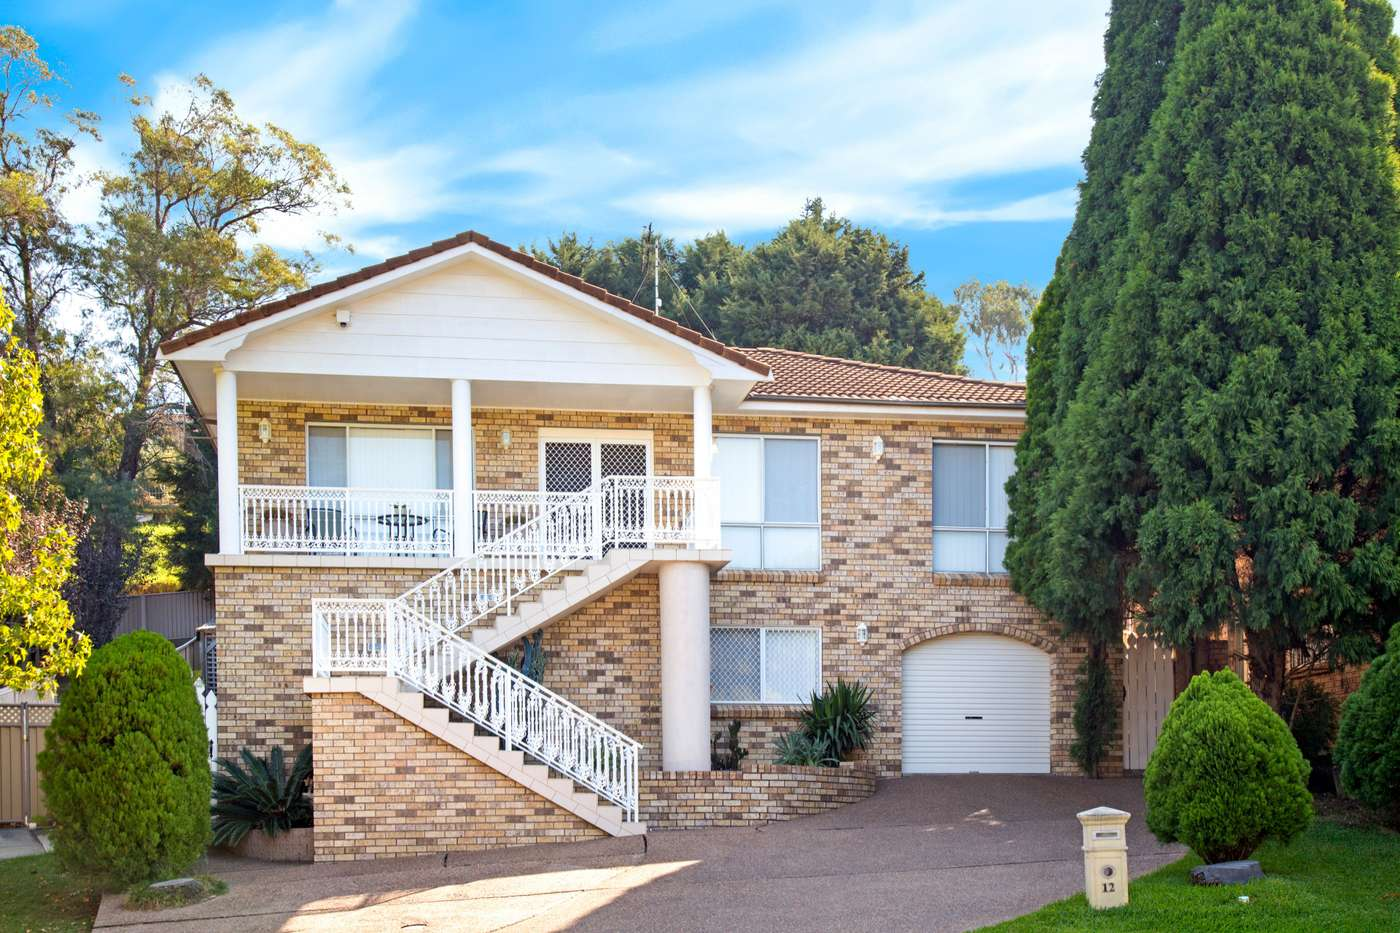 Main view of Homely house listing, 12 Gannet Avenue, Berkeley, NSW 2506